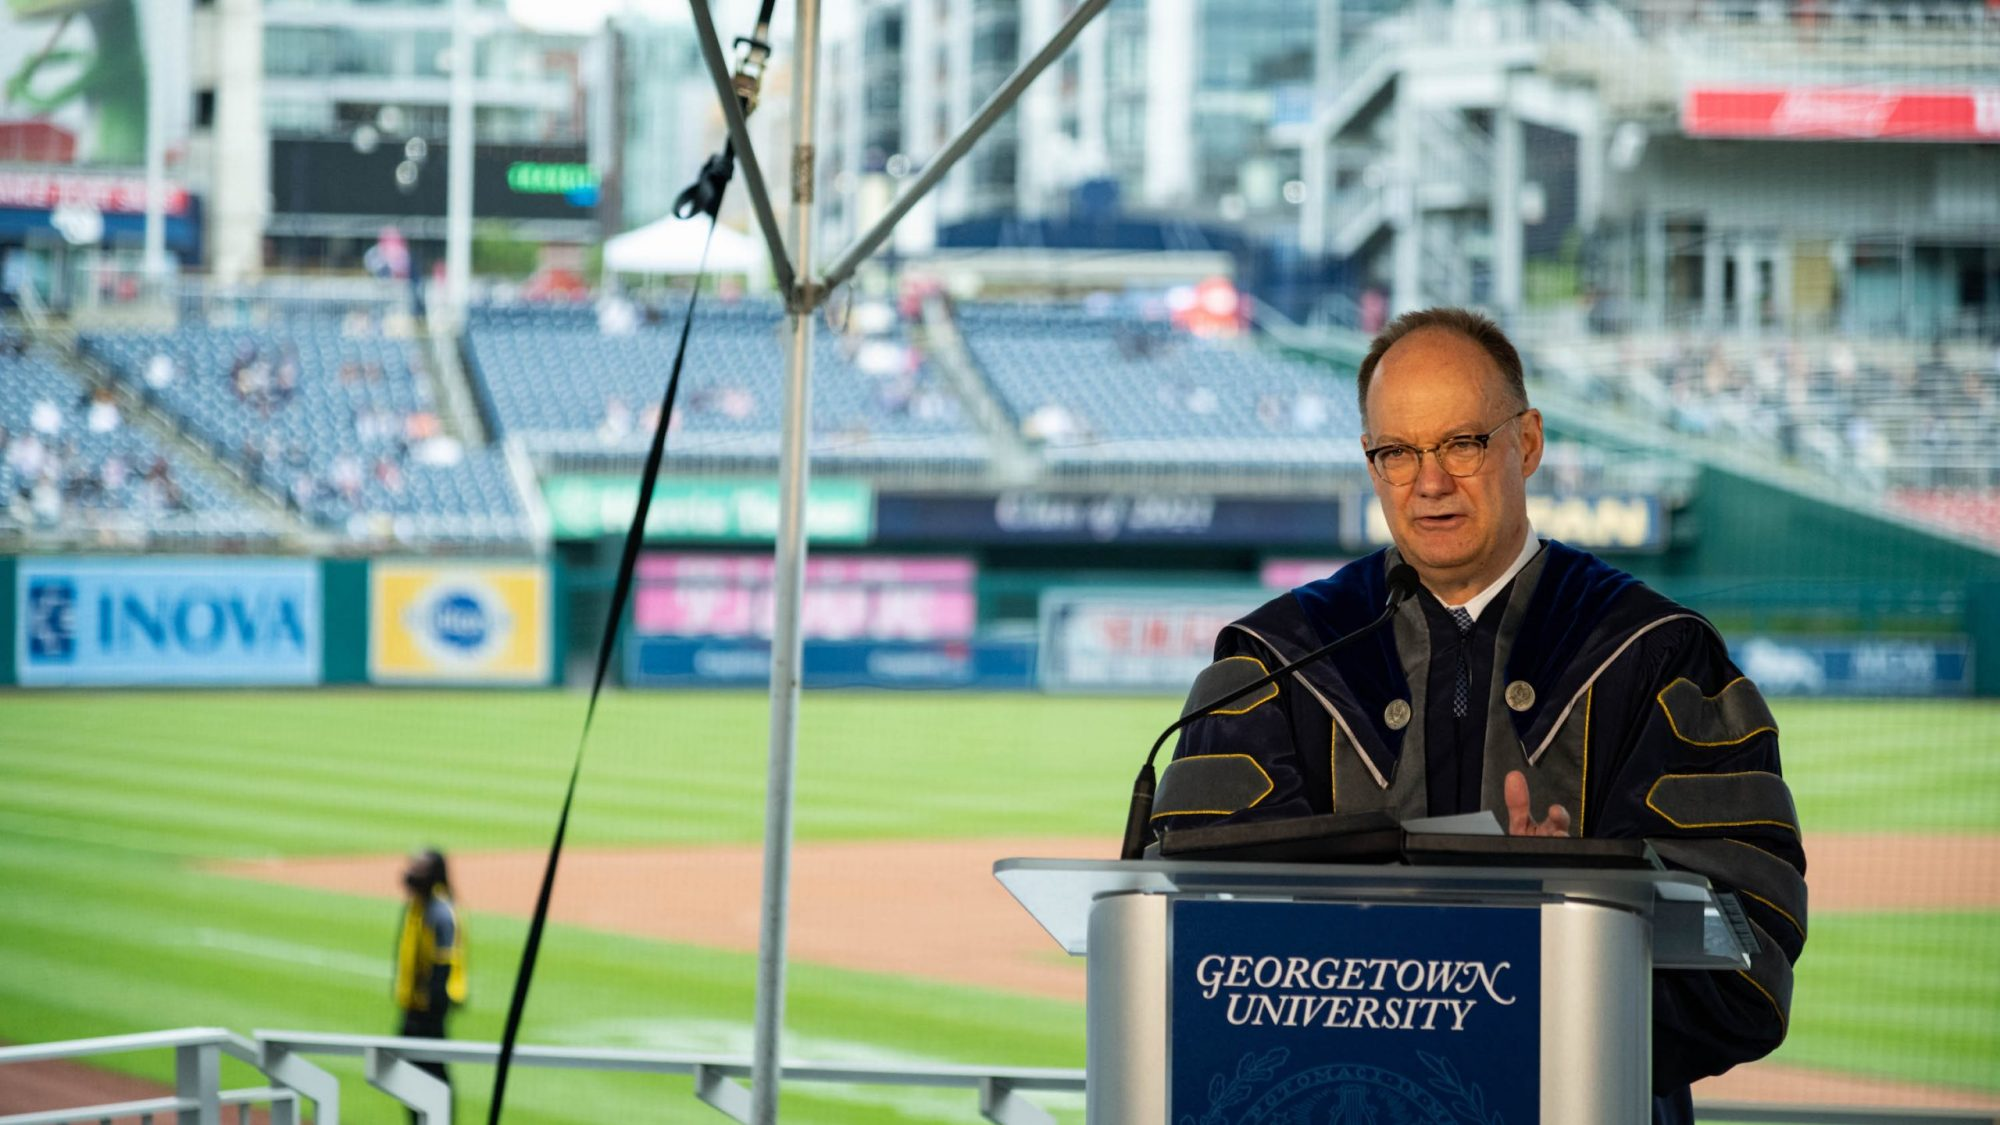 President DeGioia speaks from a podium at Nationals Park